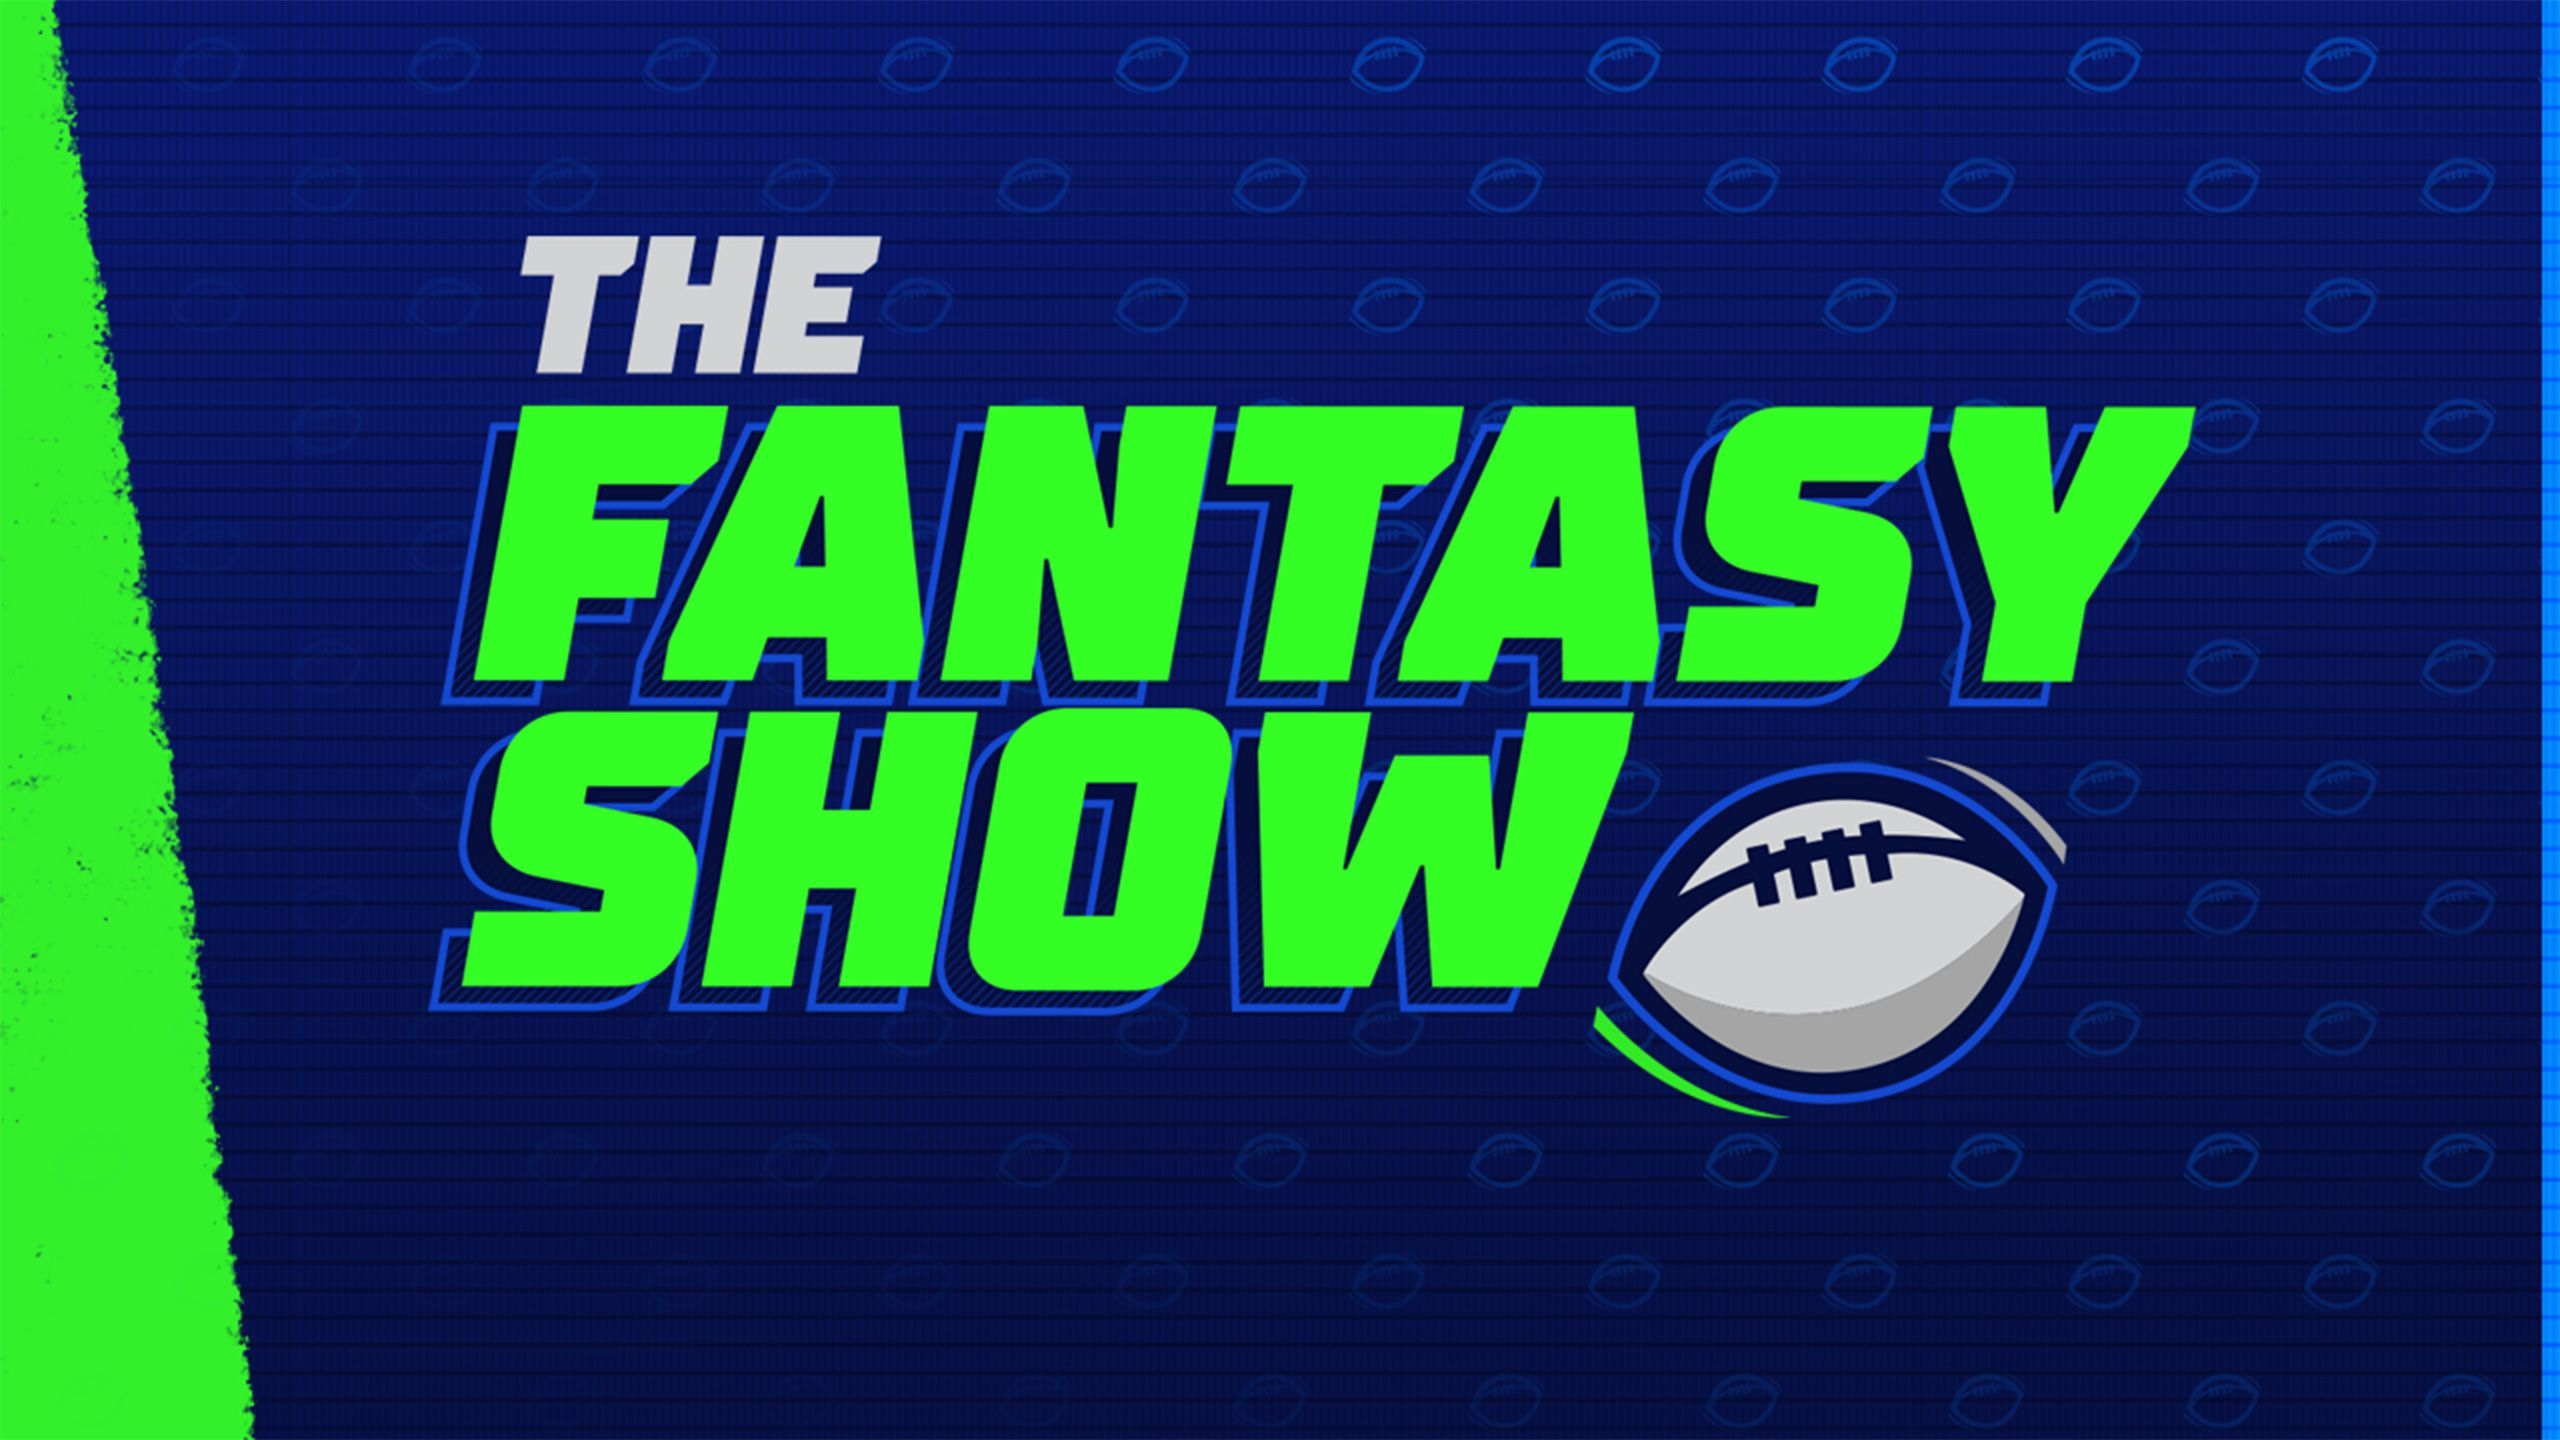 The Fantasy Show presented by E*Trade